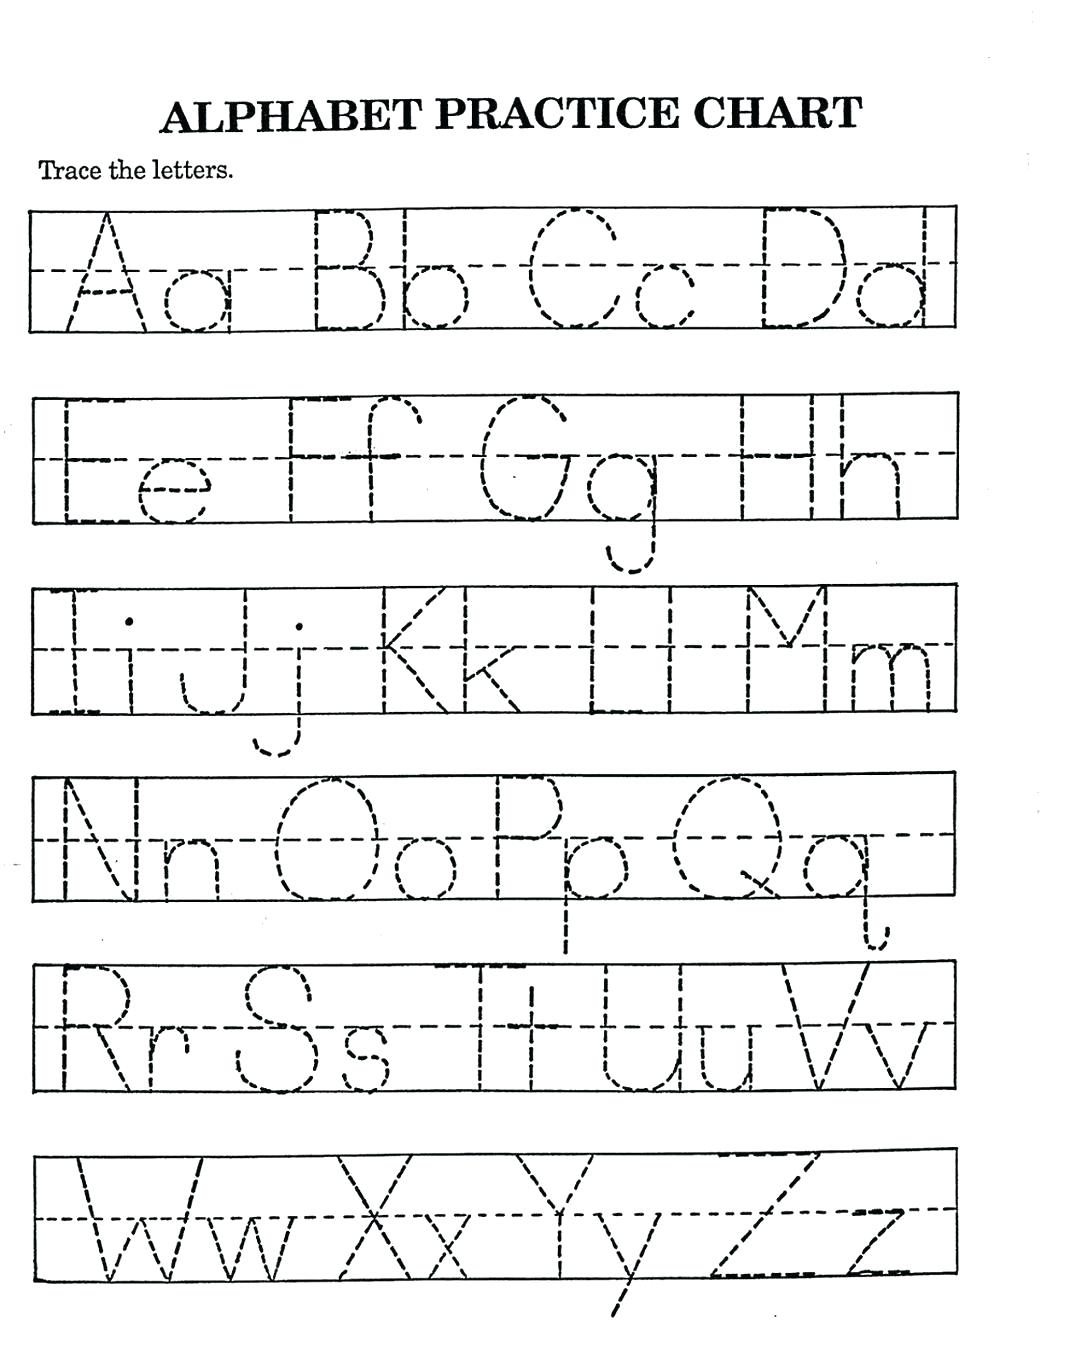 Alphabet Worksheets For Kindergarten Z Worksheetfun Az with A-Z Alphabet Worksheets Kindergarten